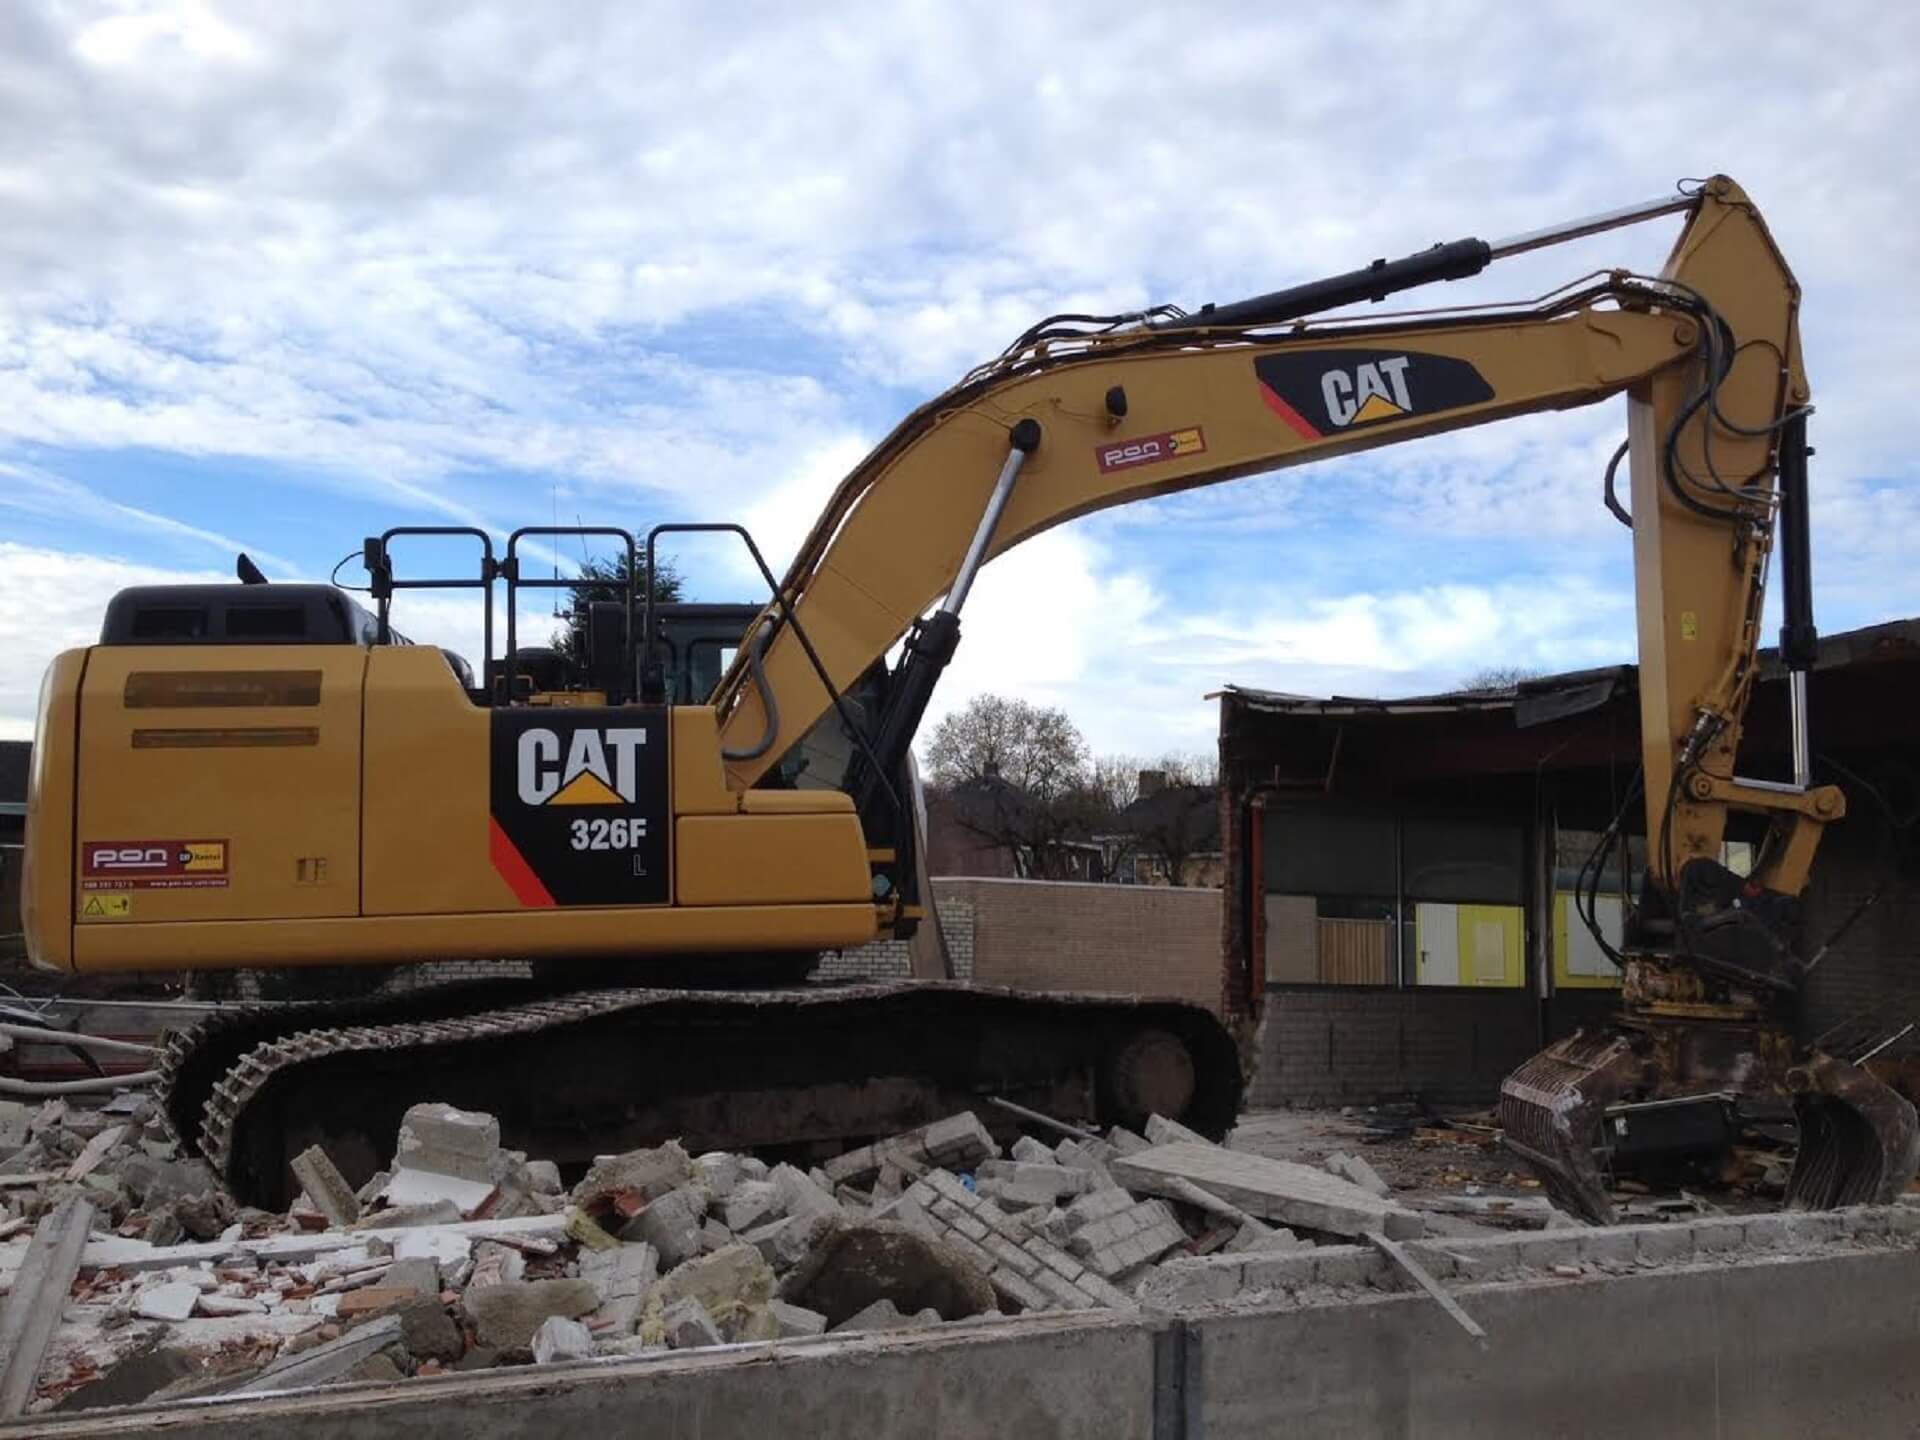 Rental - Productgroep - Rupsgraafmachines - Cat 326F